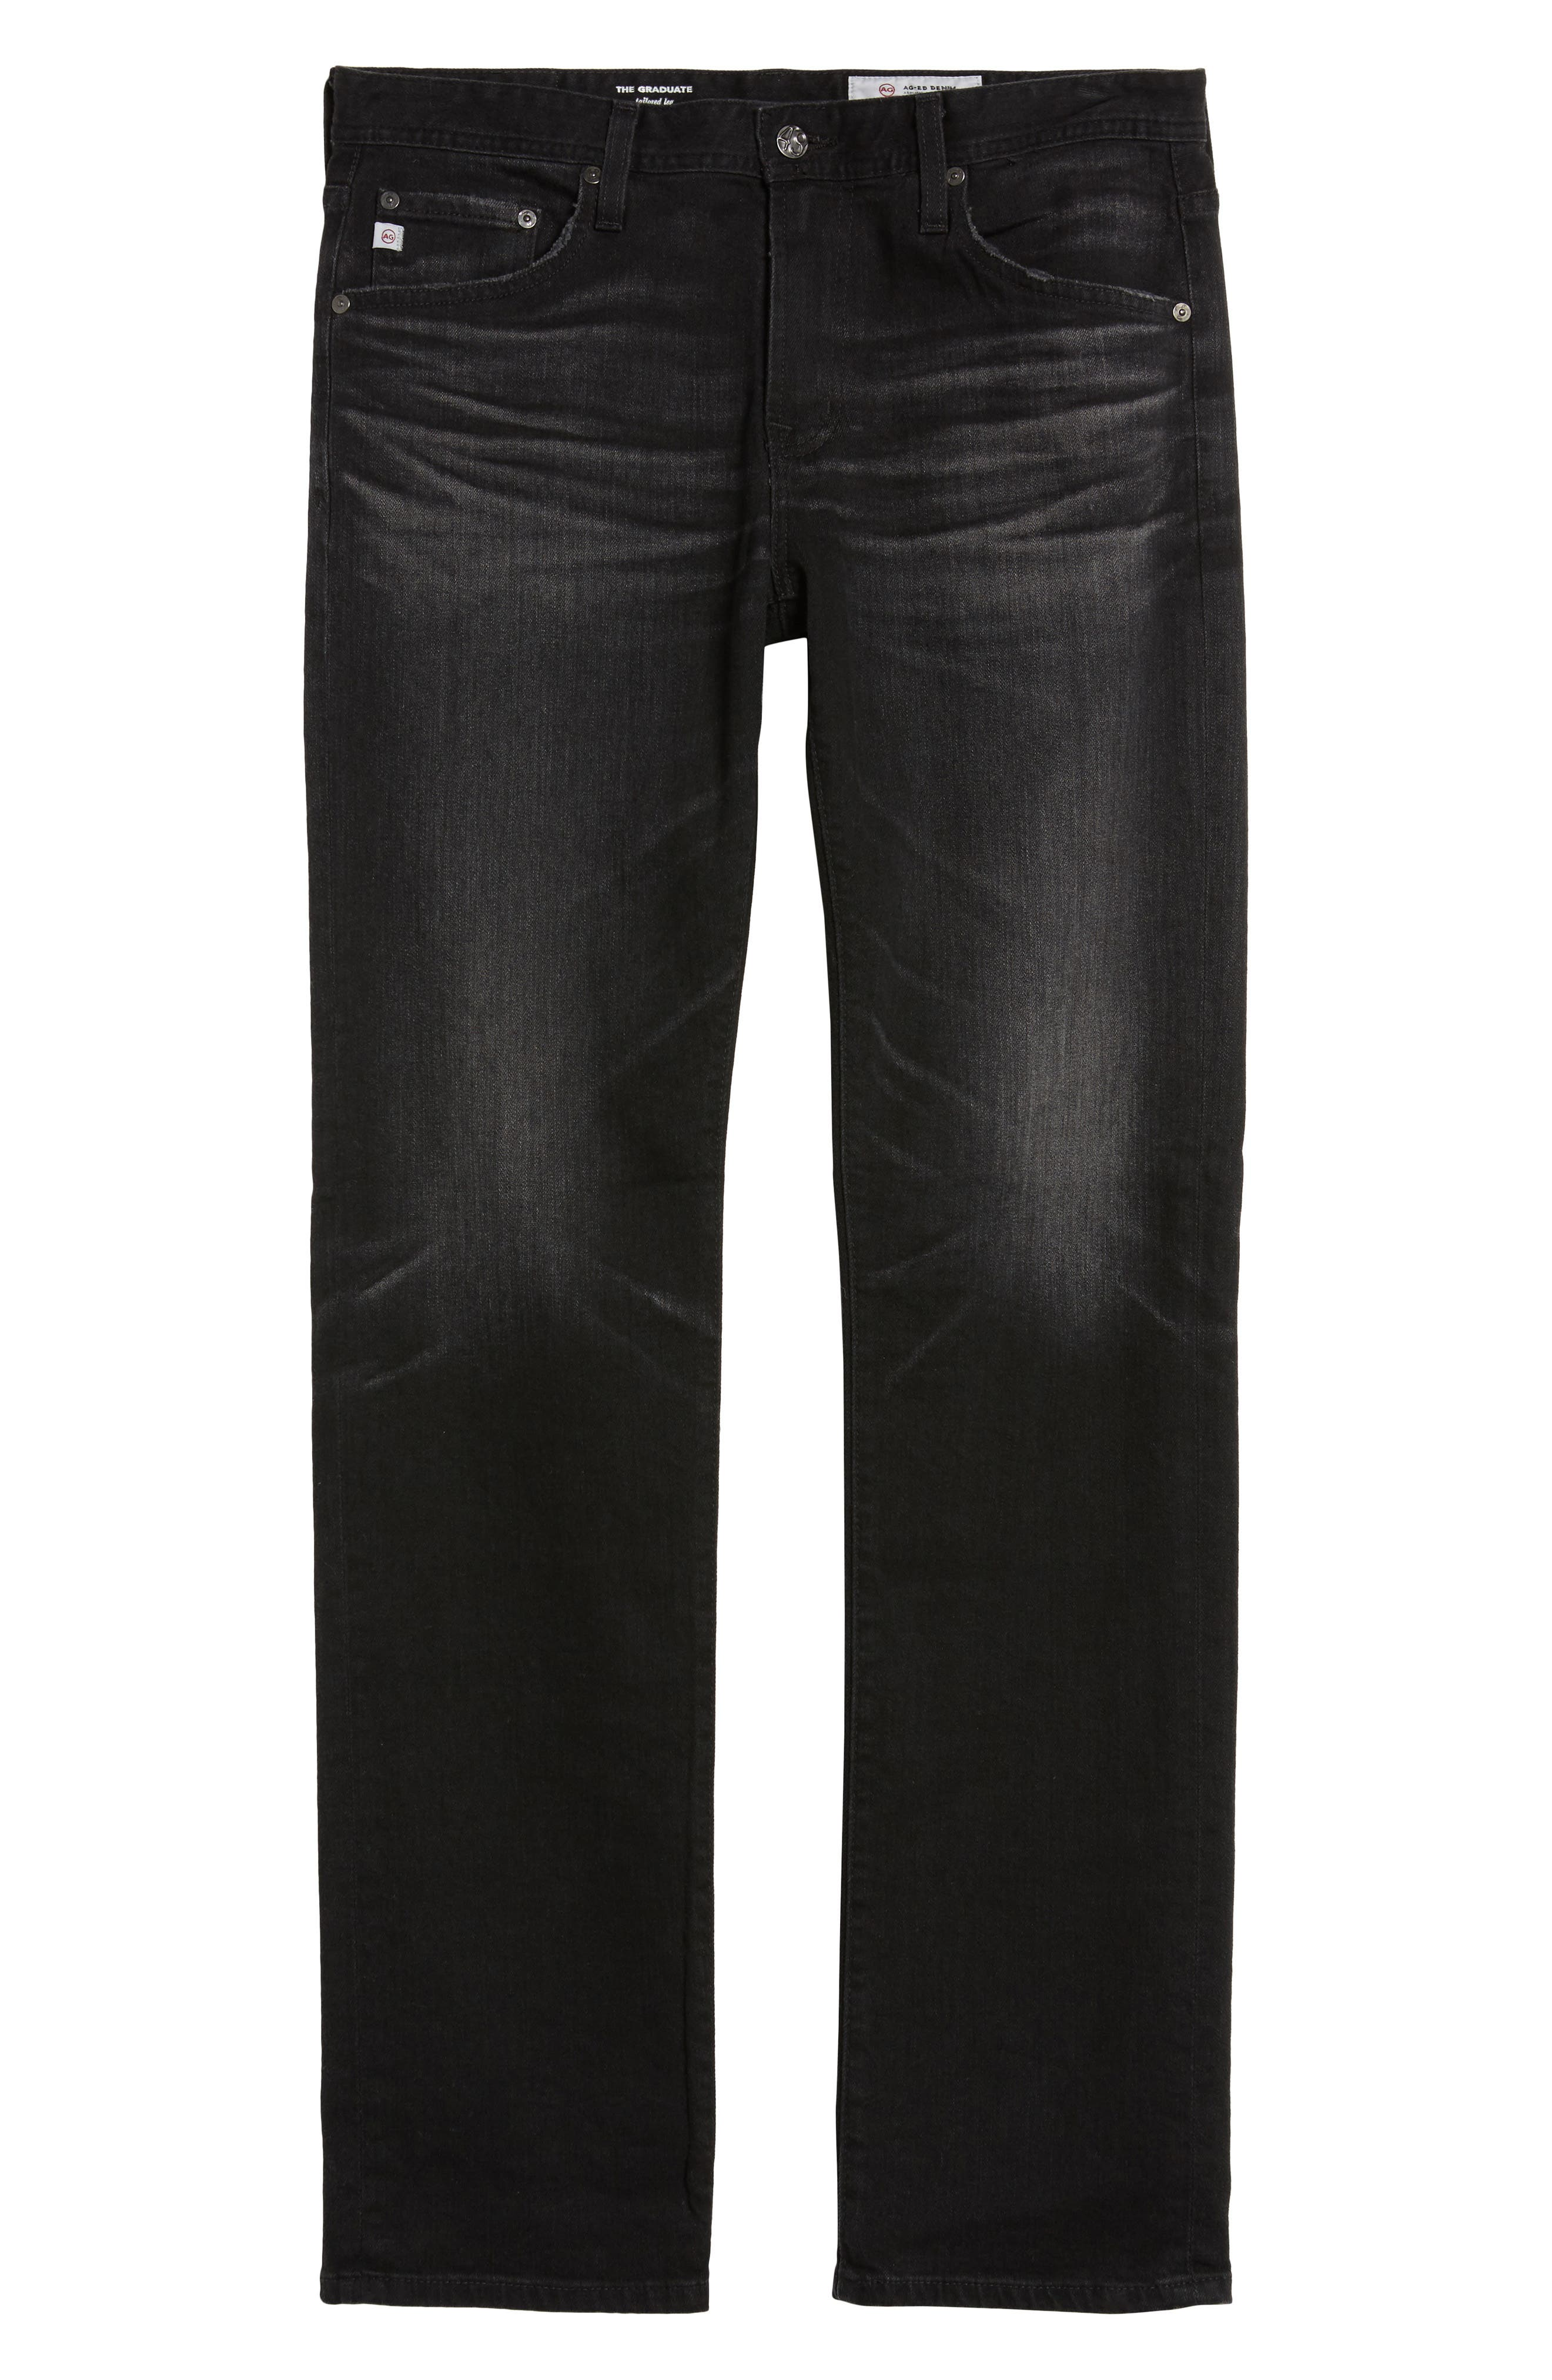 Graduate Slim Straight Fit Jeans,                             Alternate thumbnail 6, color,                             4 Years Down